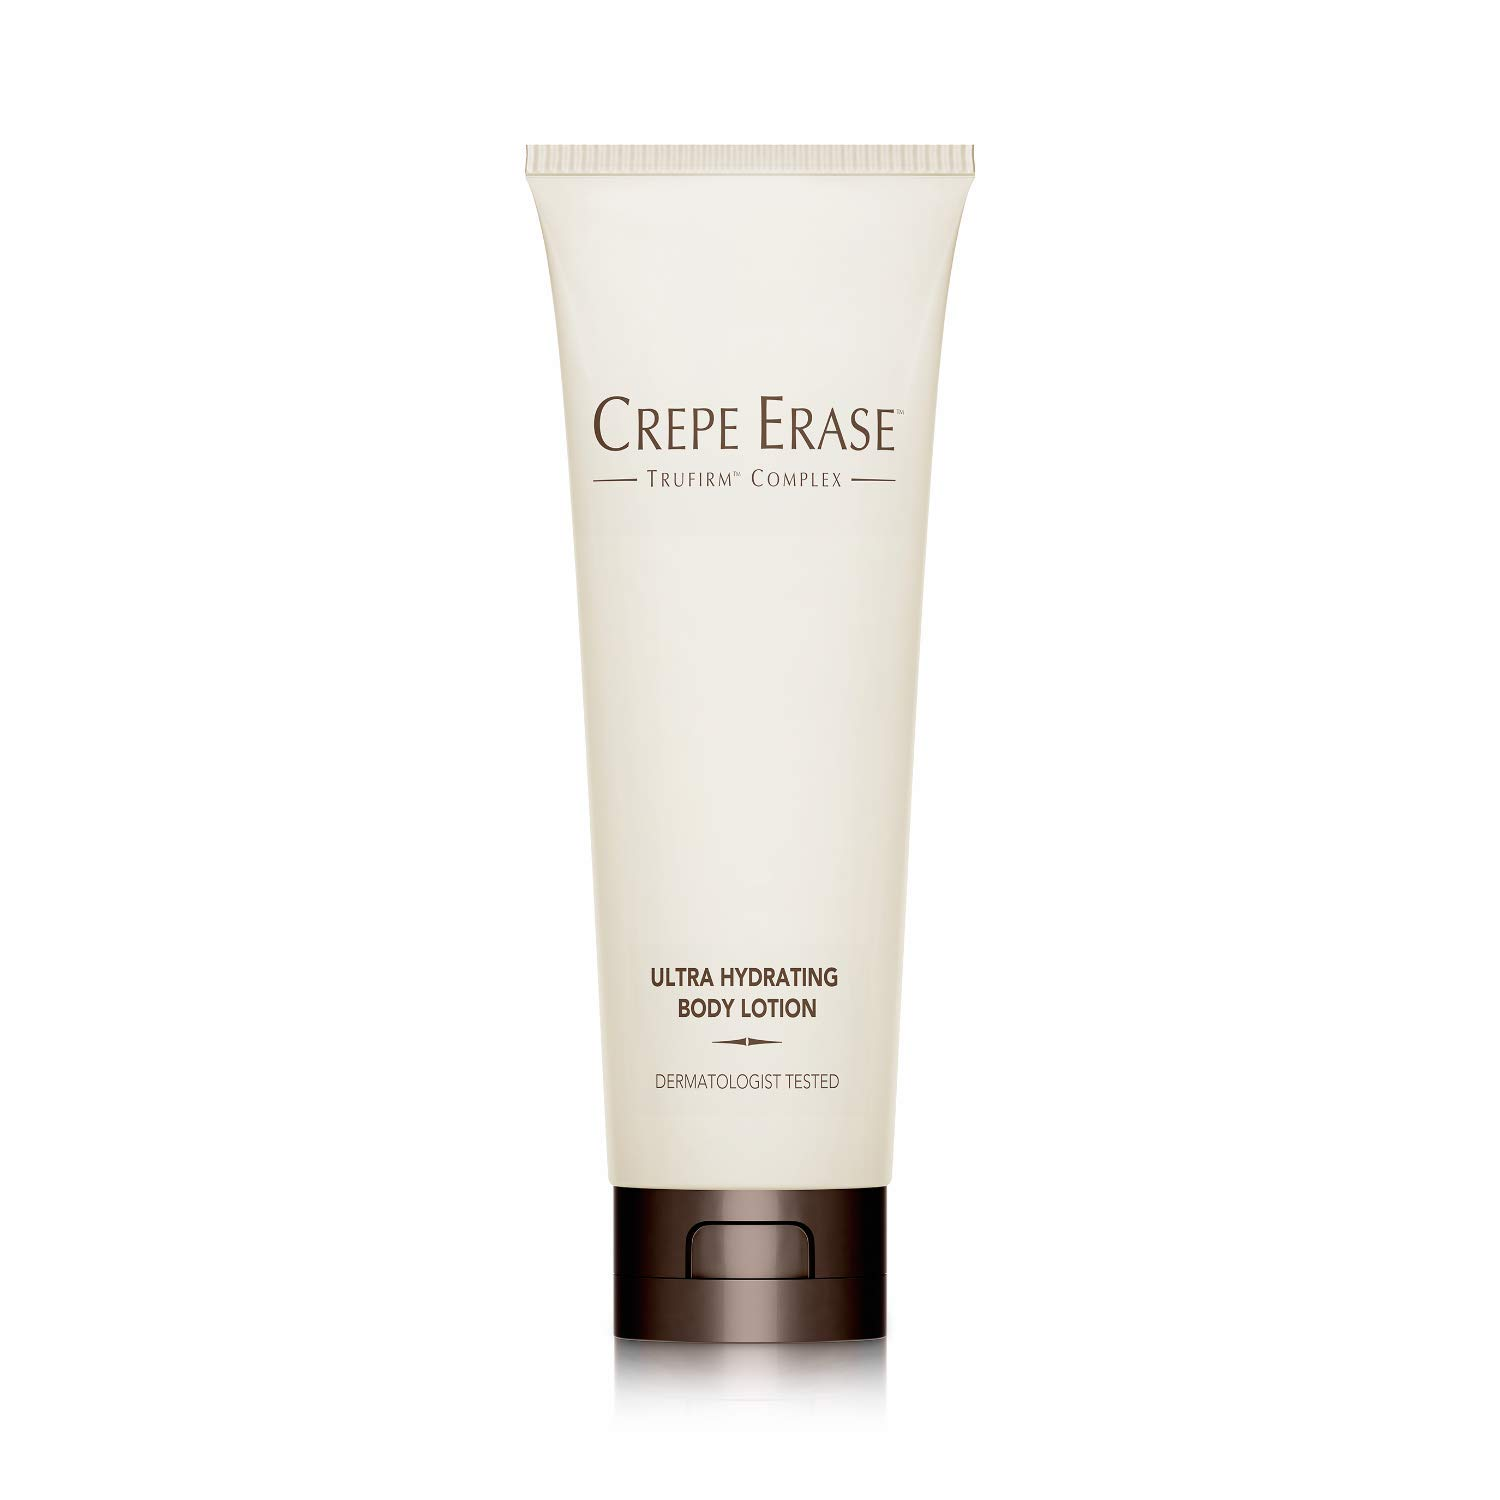 Crepe Erase - Ultra Hydrating Body Lotion - TruFirm Complex - 7.5 Fluid Ounces by Crepe Erase